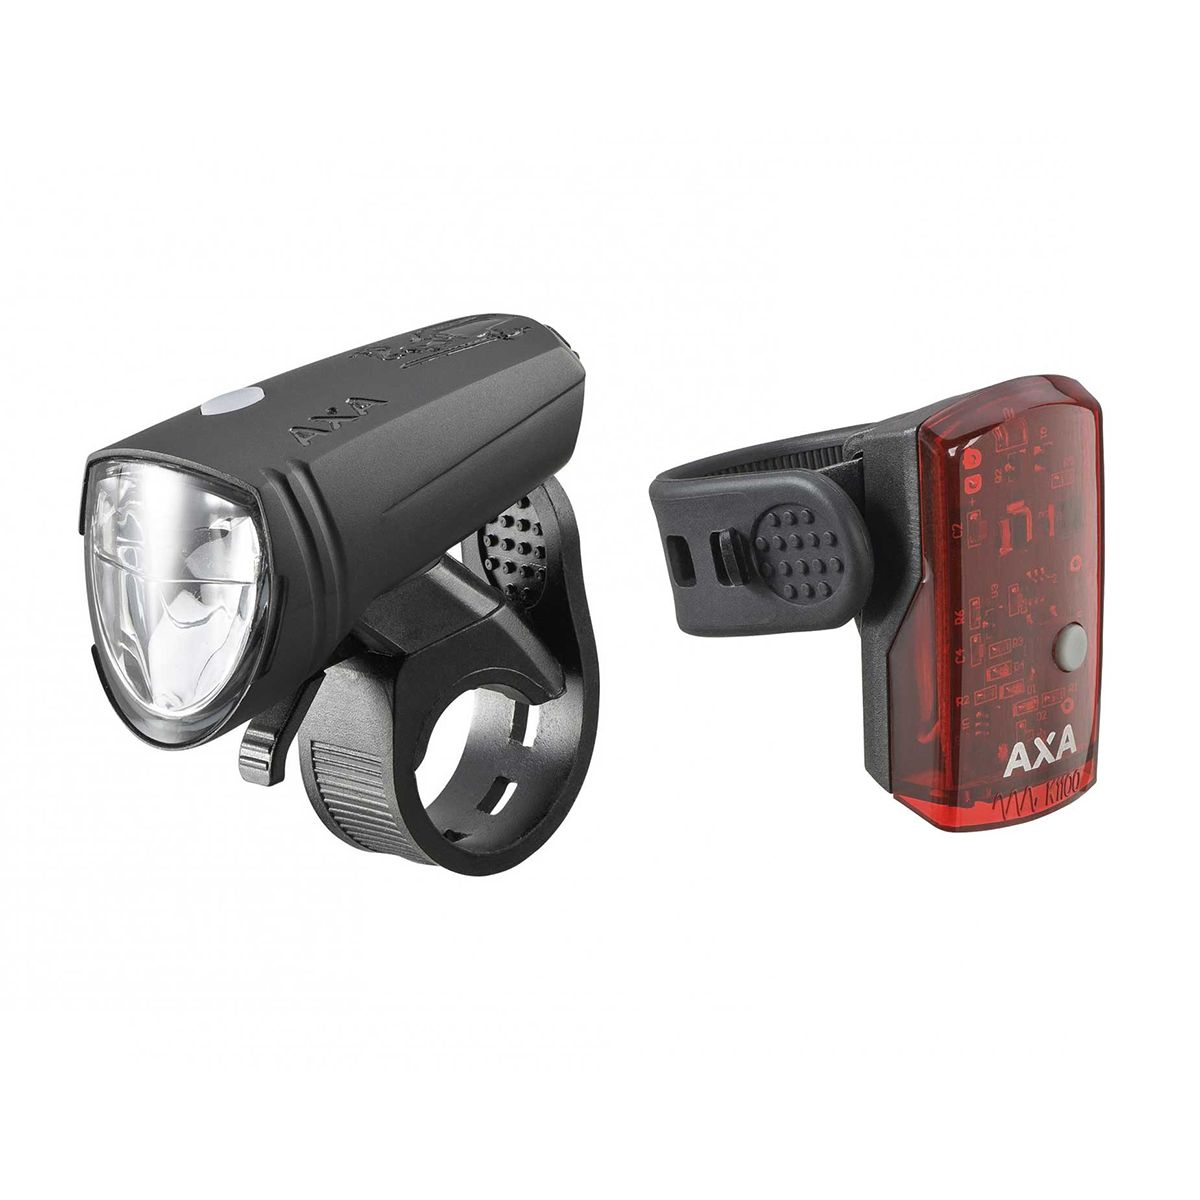 Greenline 15 lux front light + 1 LED rear light USB lighting set